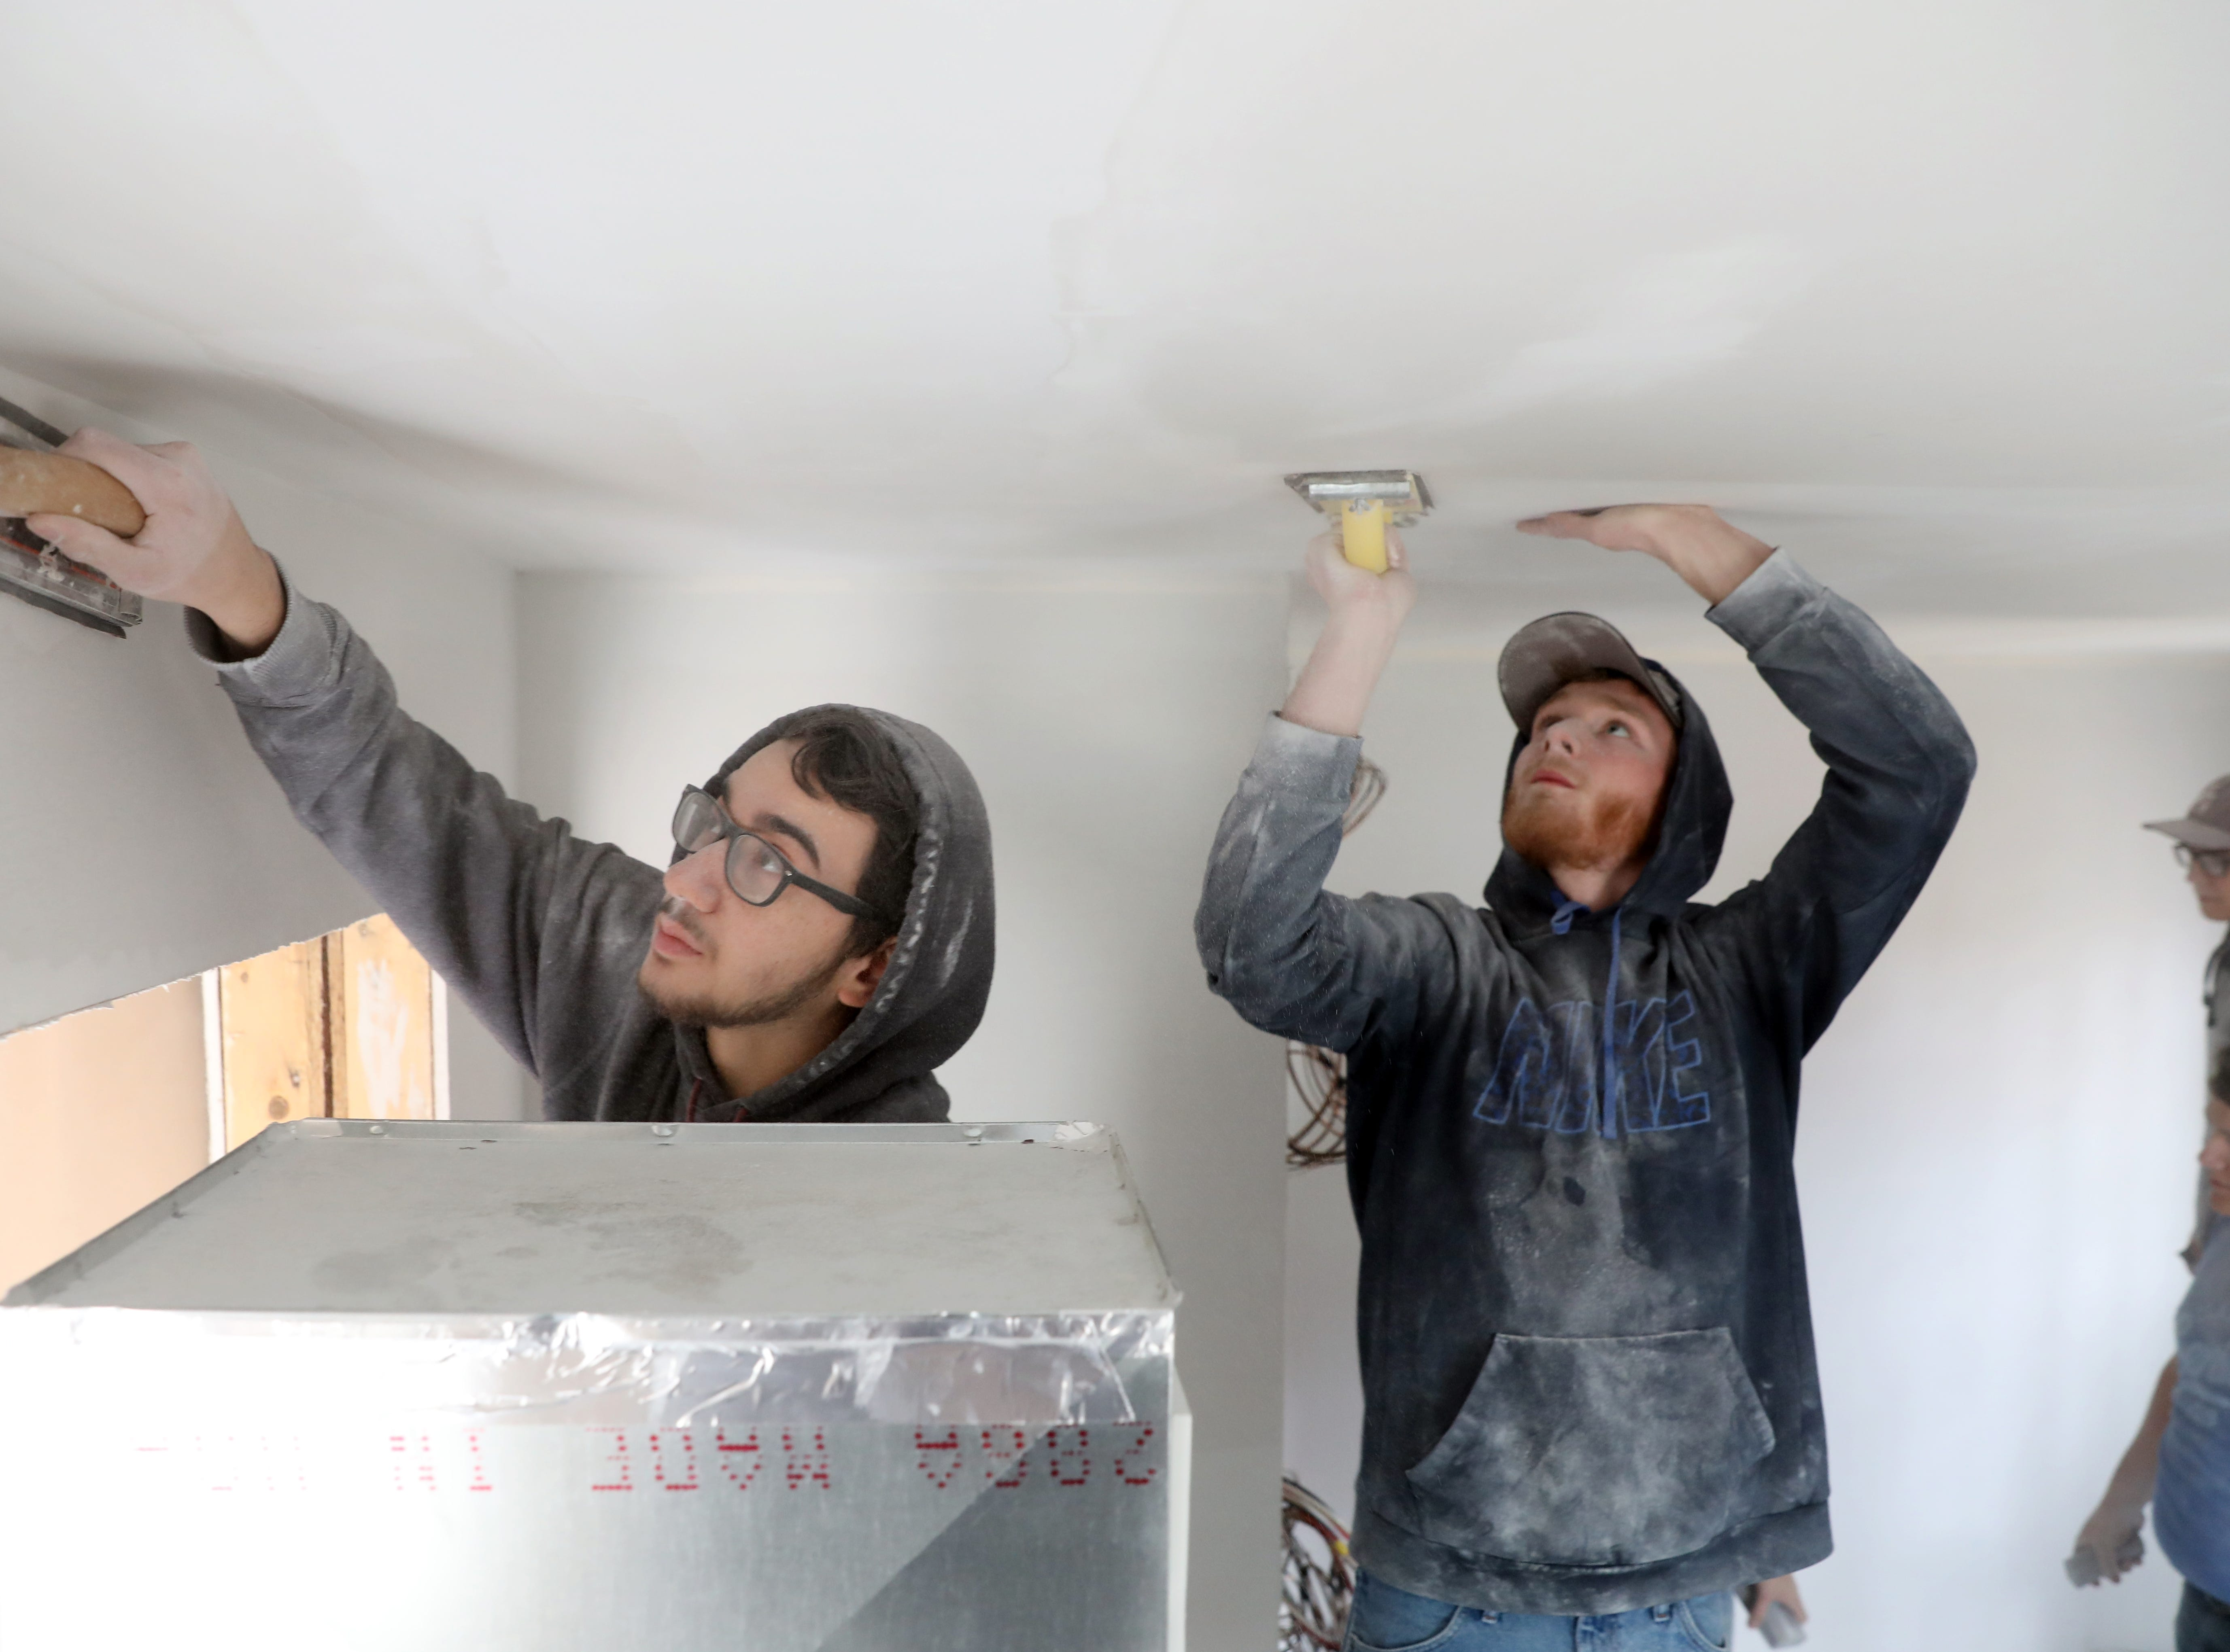 Dustin Wallace, left, and Todd Hina work on the ceiling in a house the carpentry program Mid-East Career and Technology Center is building for Habitat for Humanity.